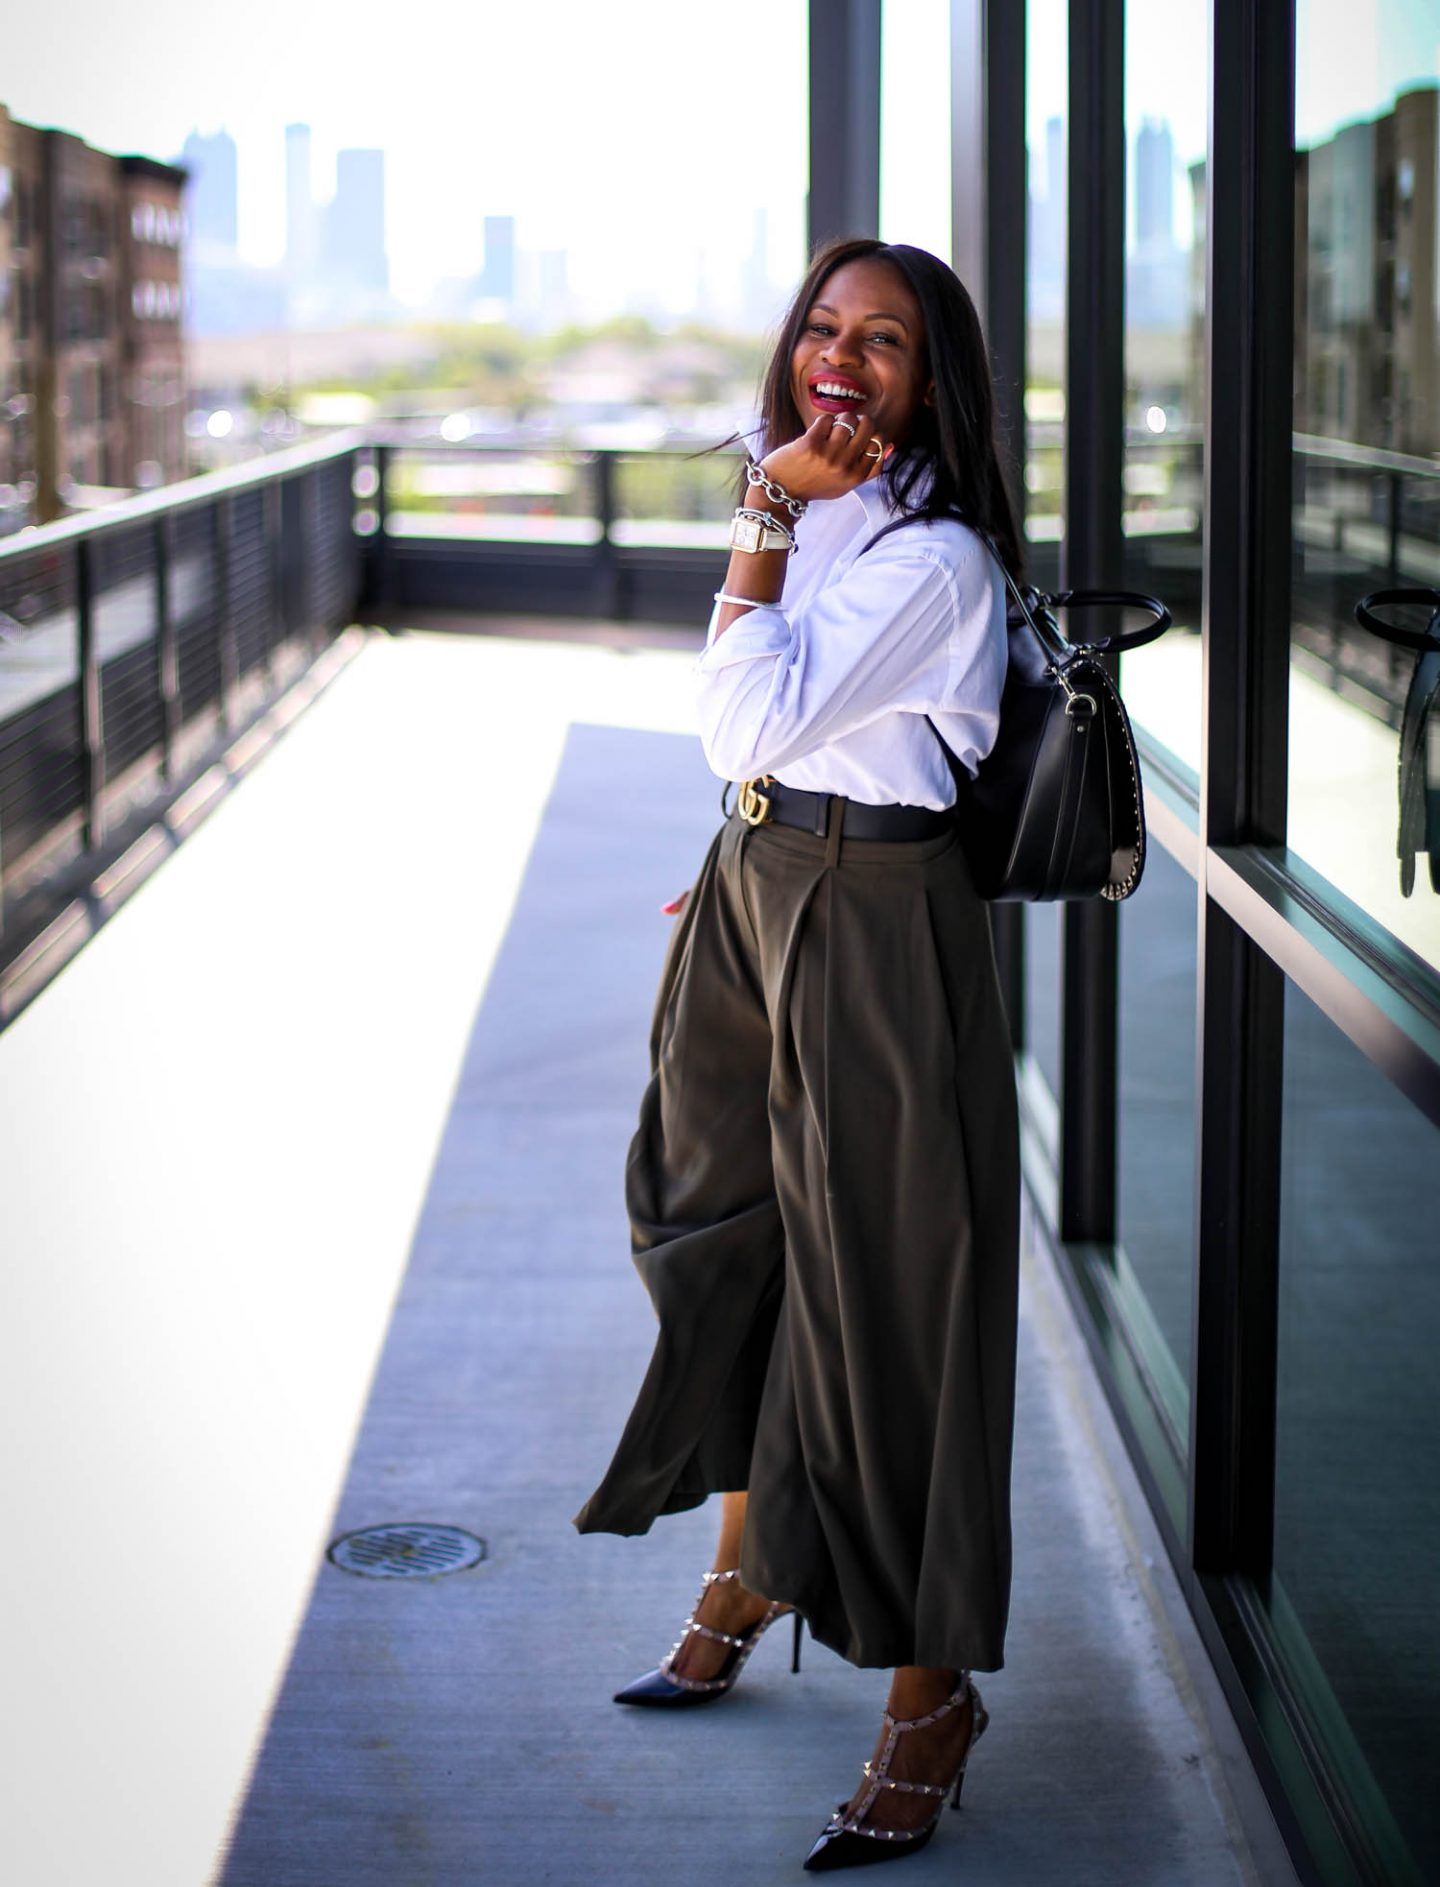 CULOTTE ME CRAZY – THE EASIEST WAY TO WEAR CULOTTES